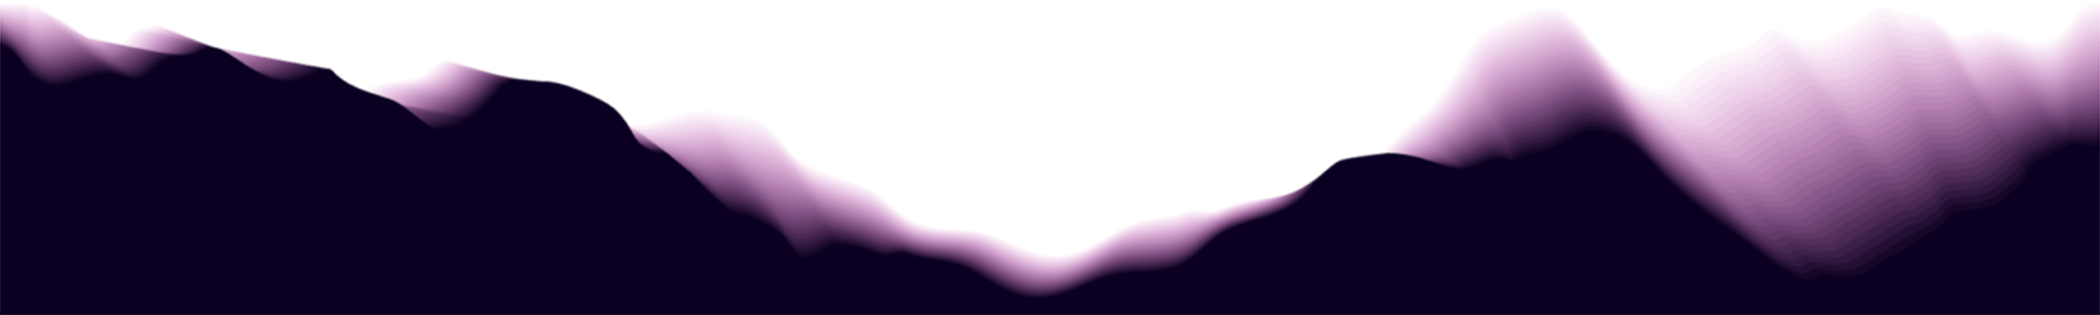 https://www.magiadosole.com/wp-content/uploads/2018/12/purple_top_divider-grande.png